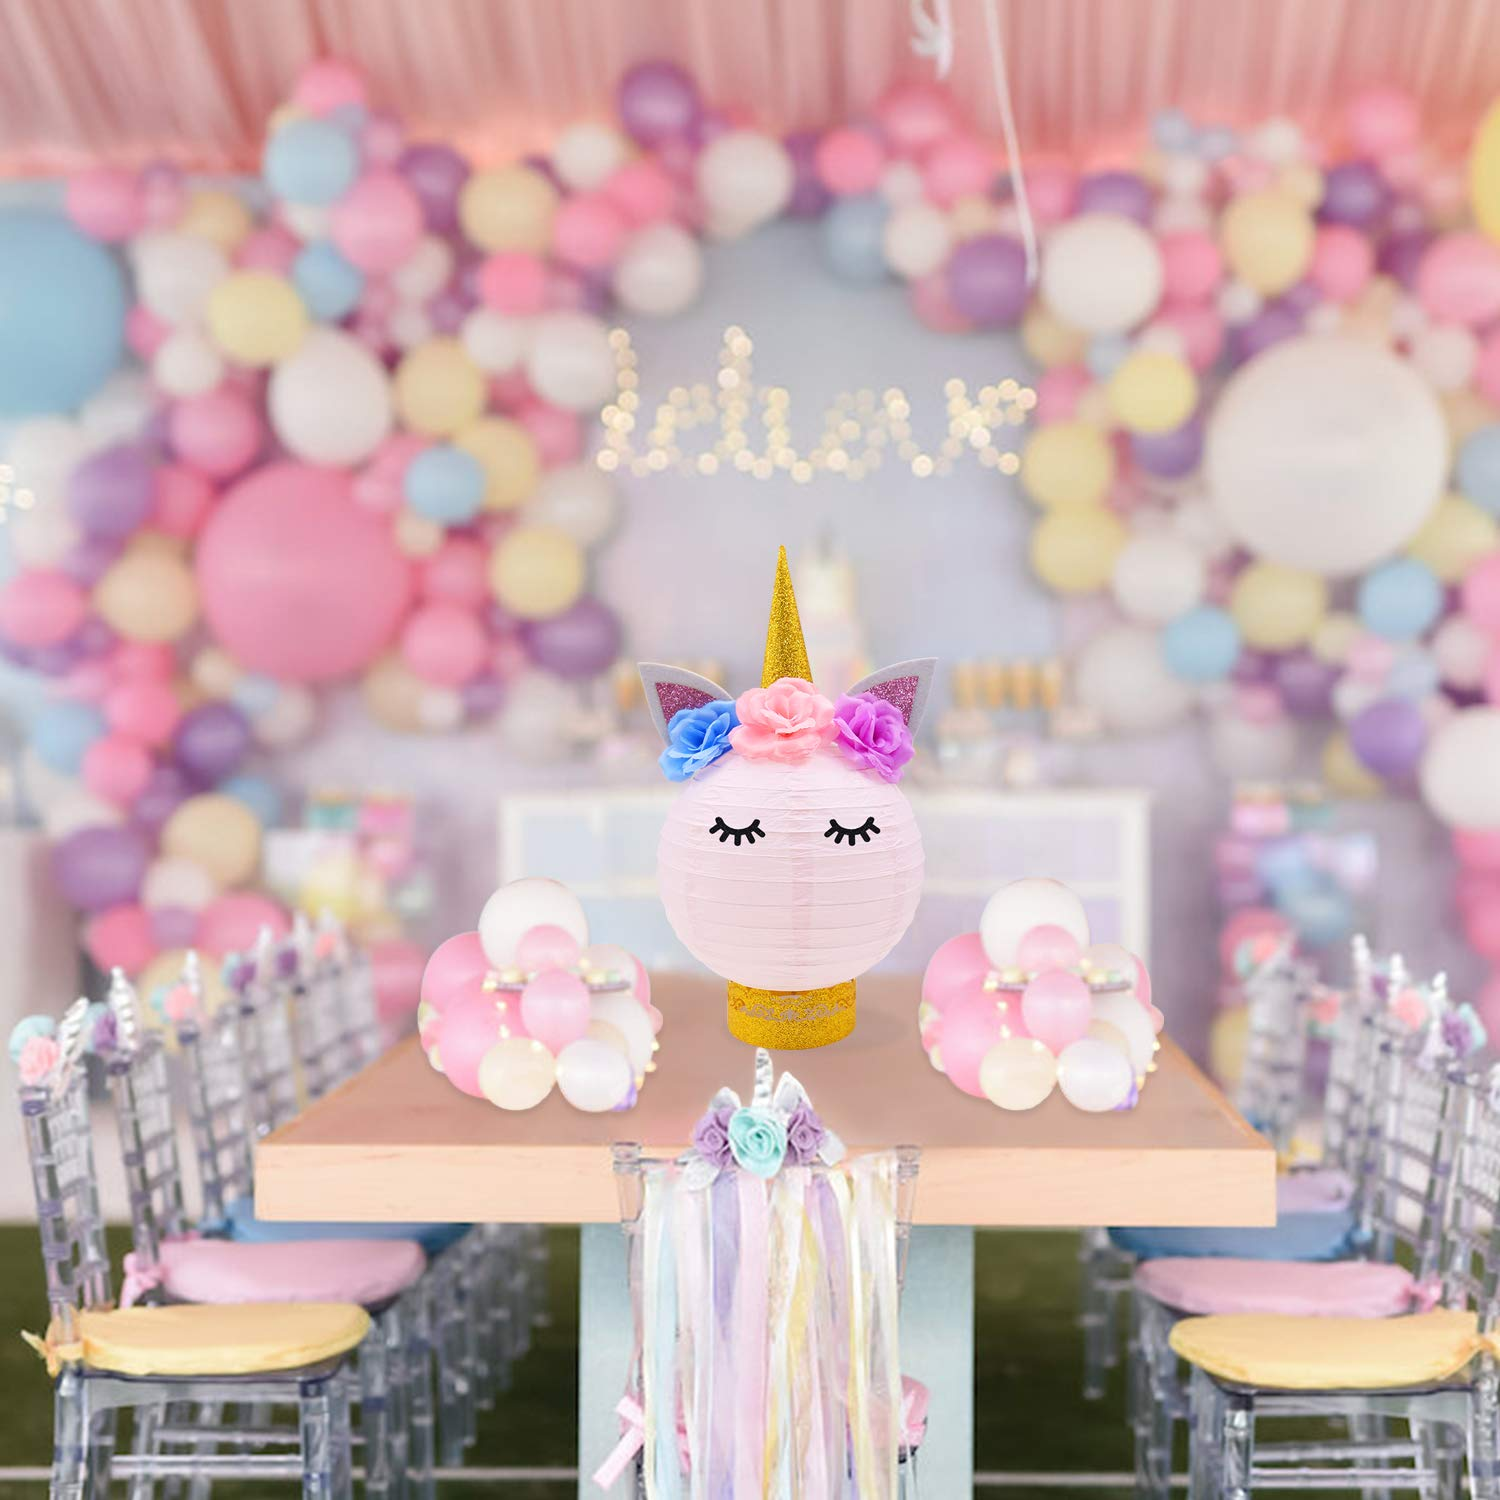 Amazon Unicorn Party Decorations Table Centerpieces Paper Lanterns DIY Ideas For Baby Shower Birthday Supplies Toys Games